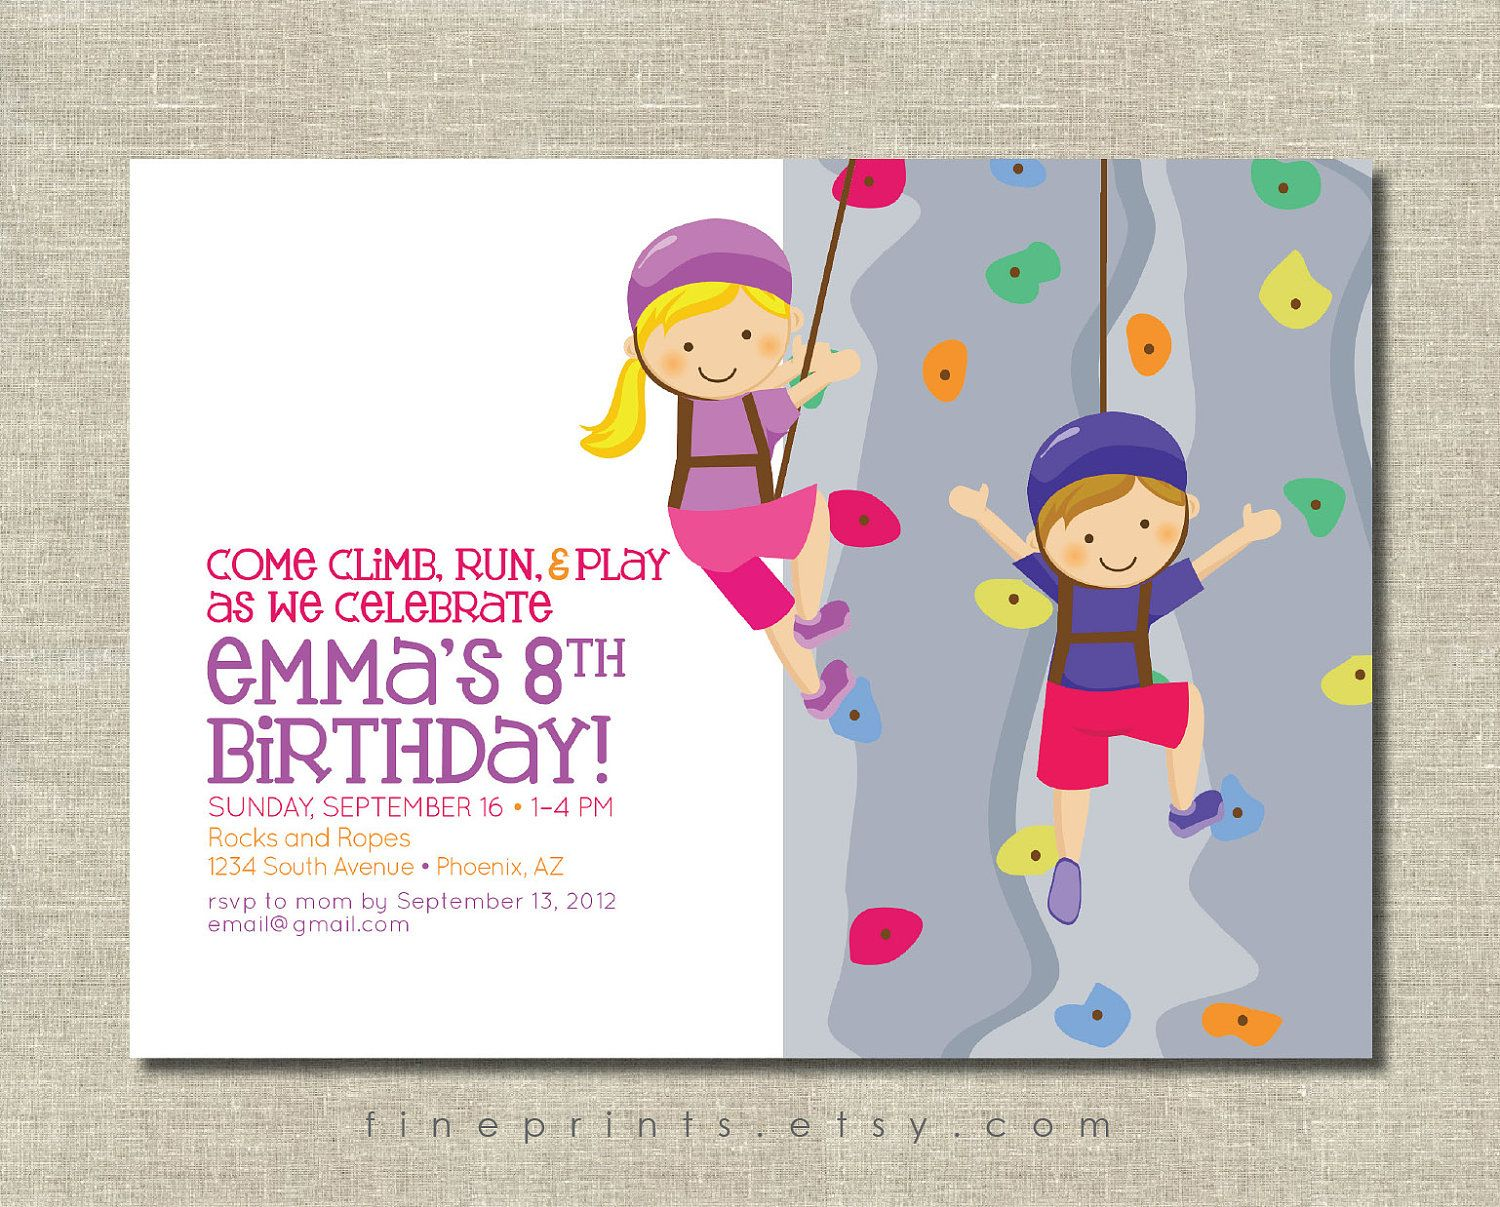 Rock wall climbing party invitation | Party invitations, Rock and ...